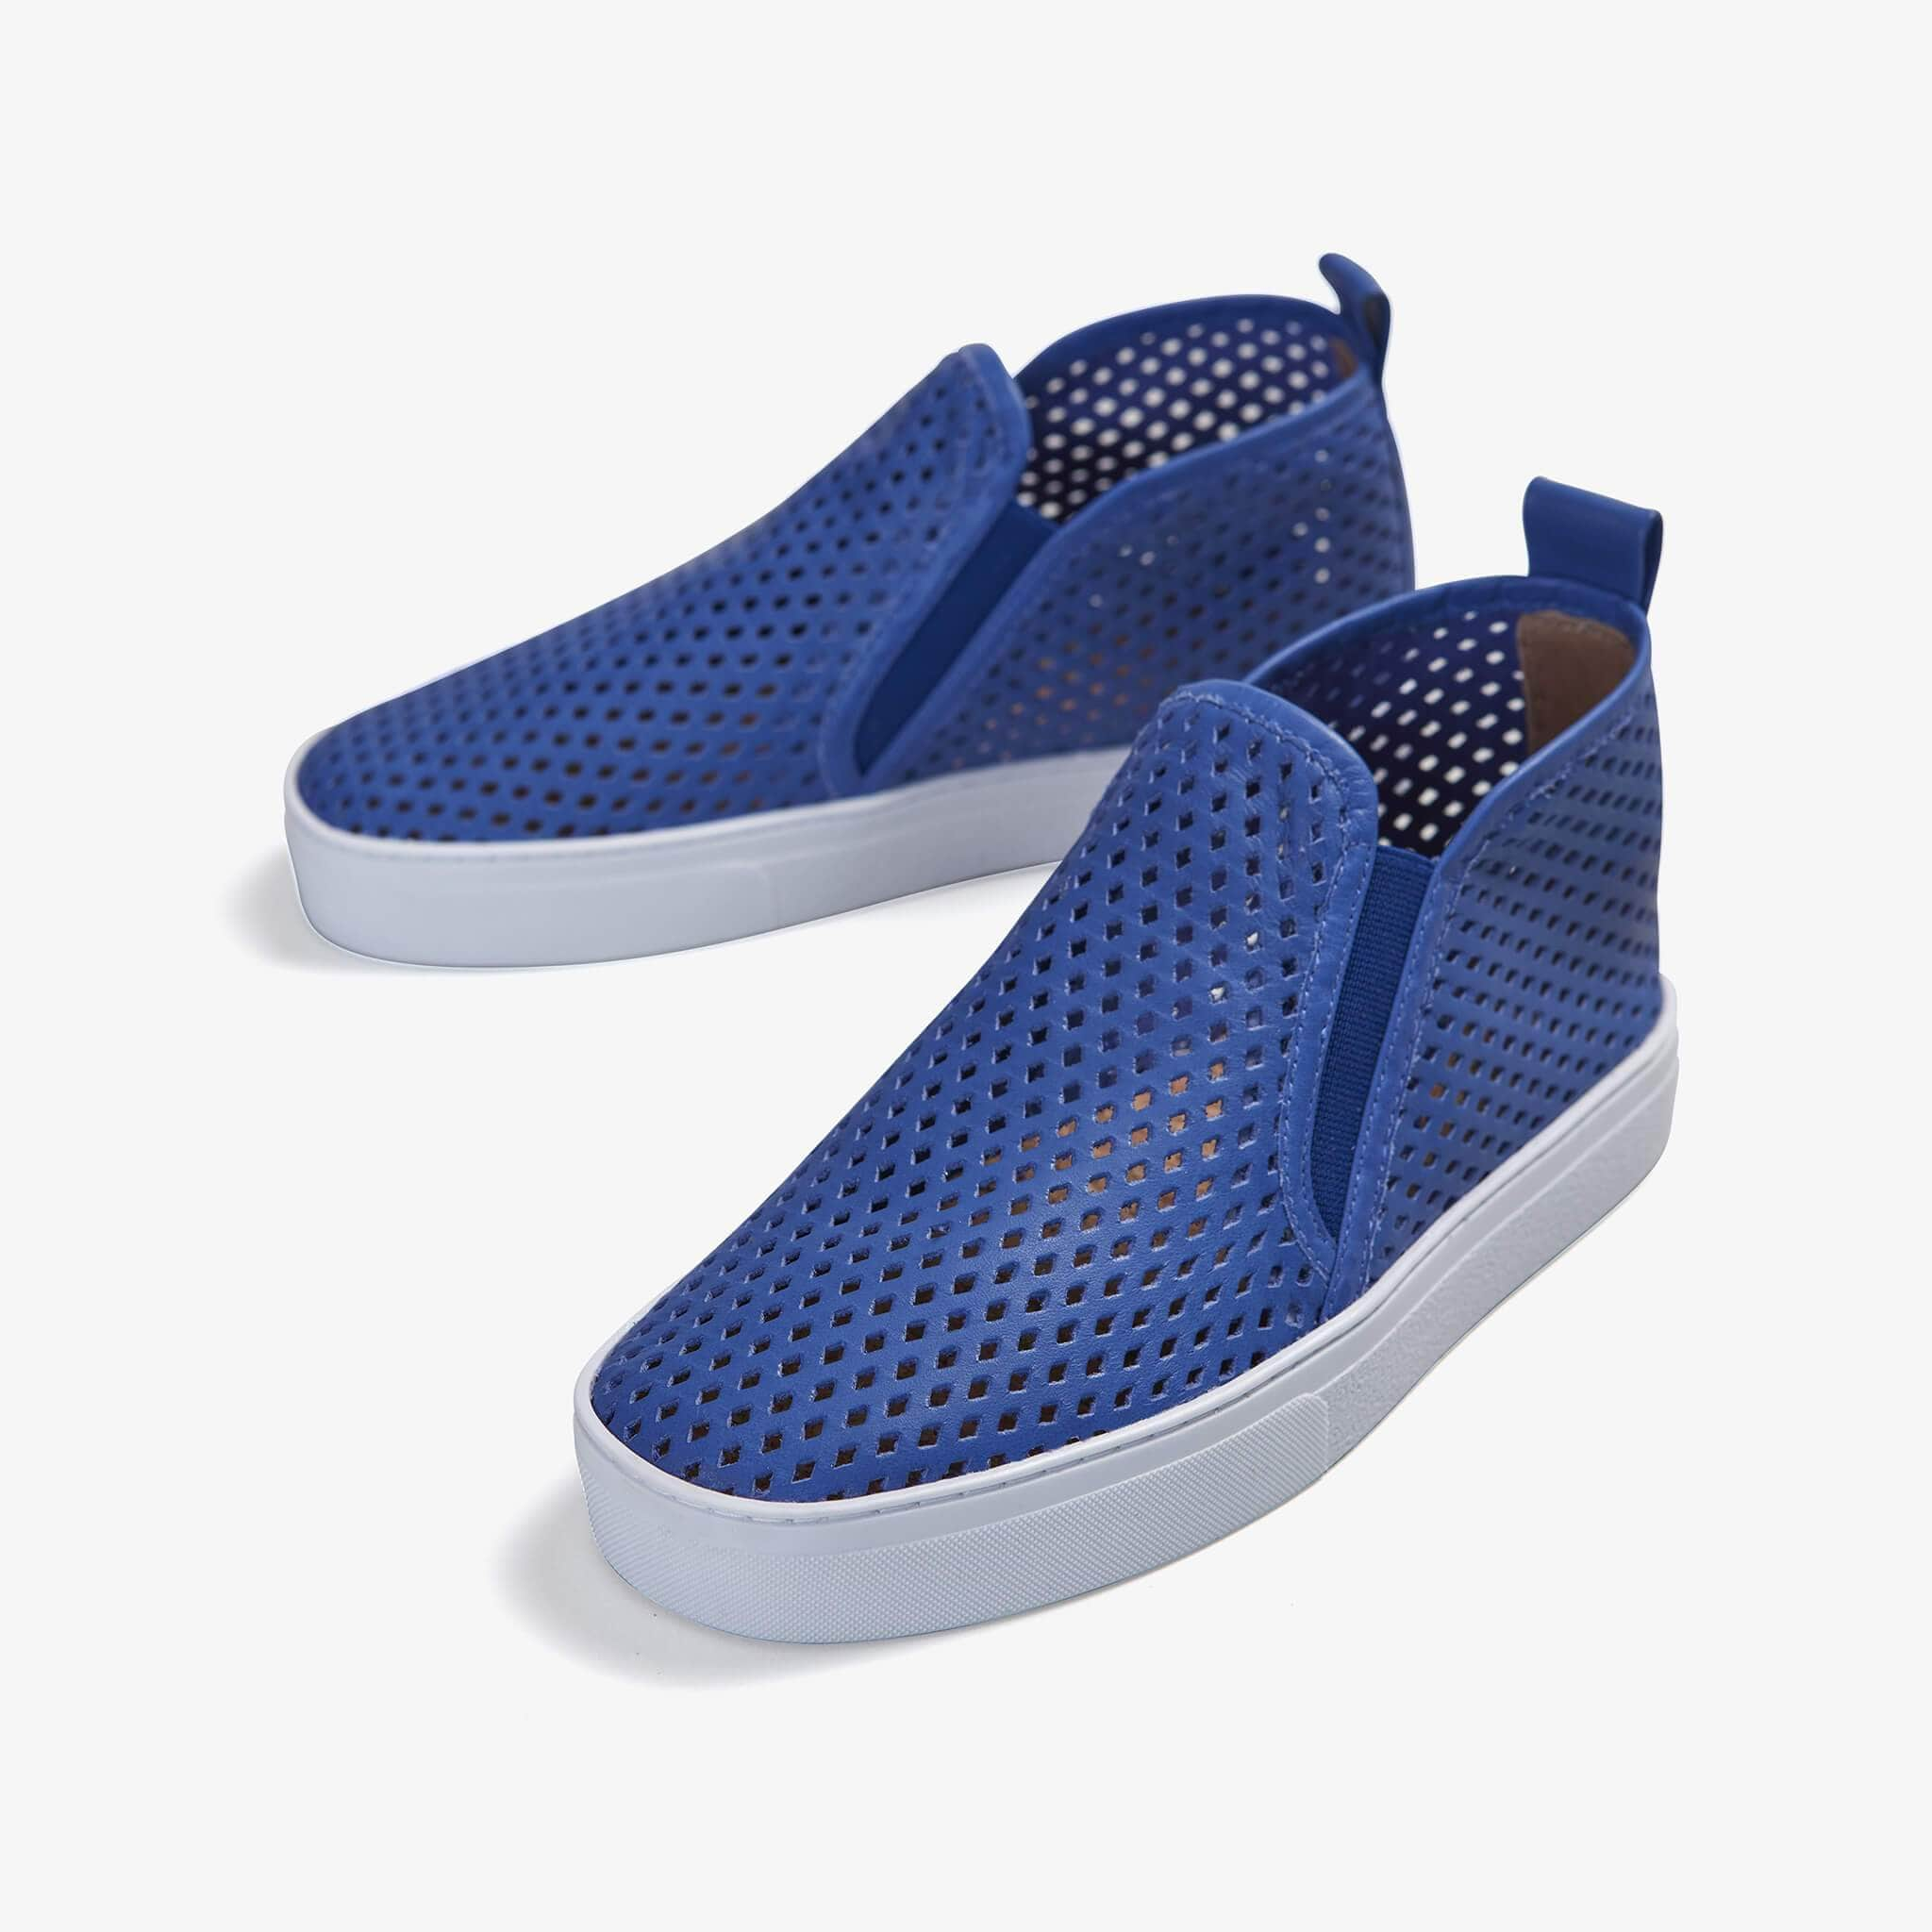 Jibs Mid Rise Galaxy Blue Slip On Sneaker Bootie